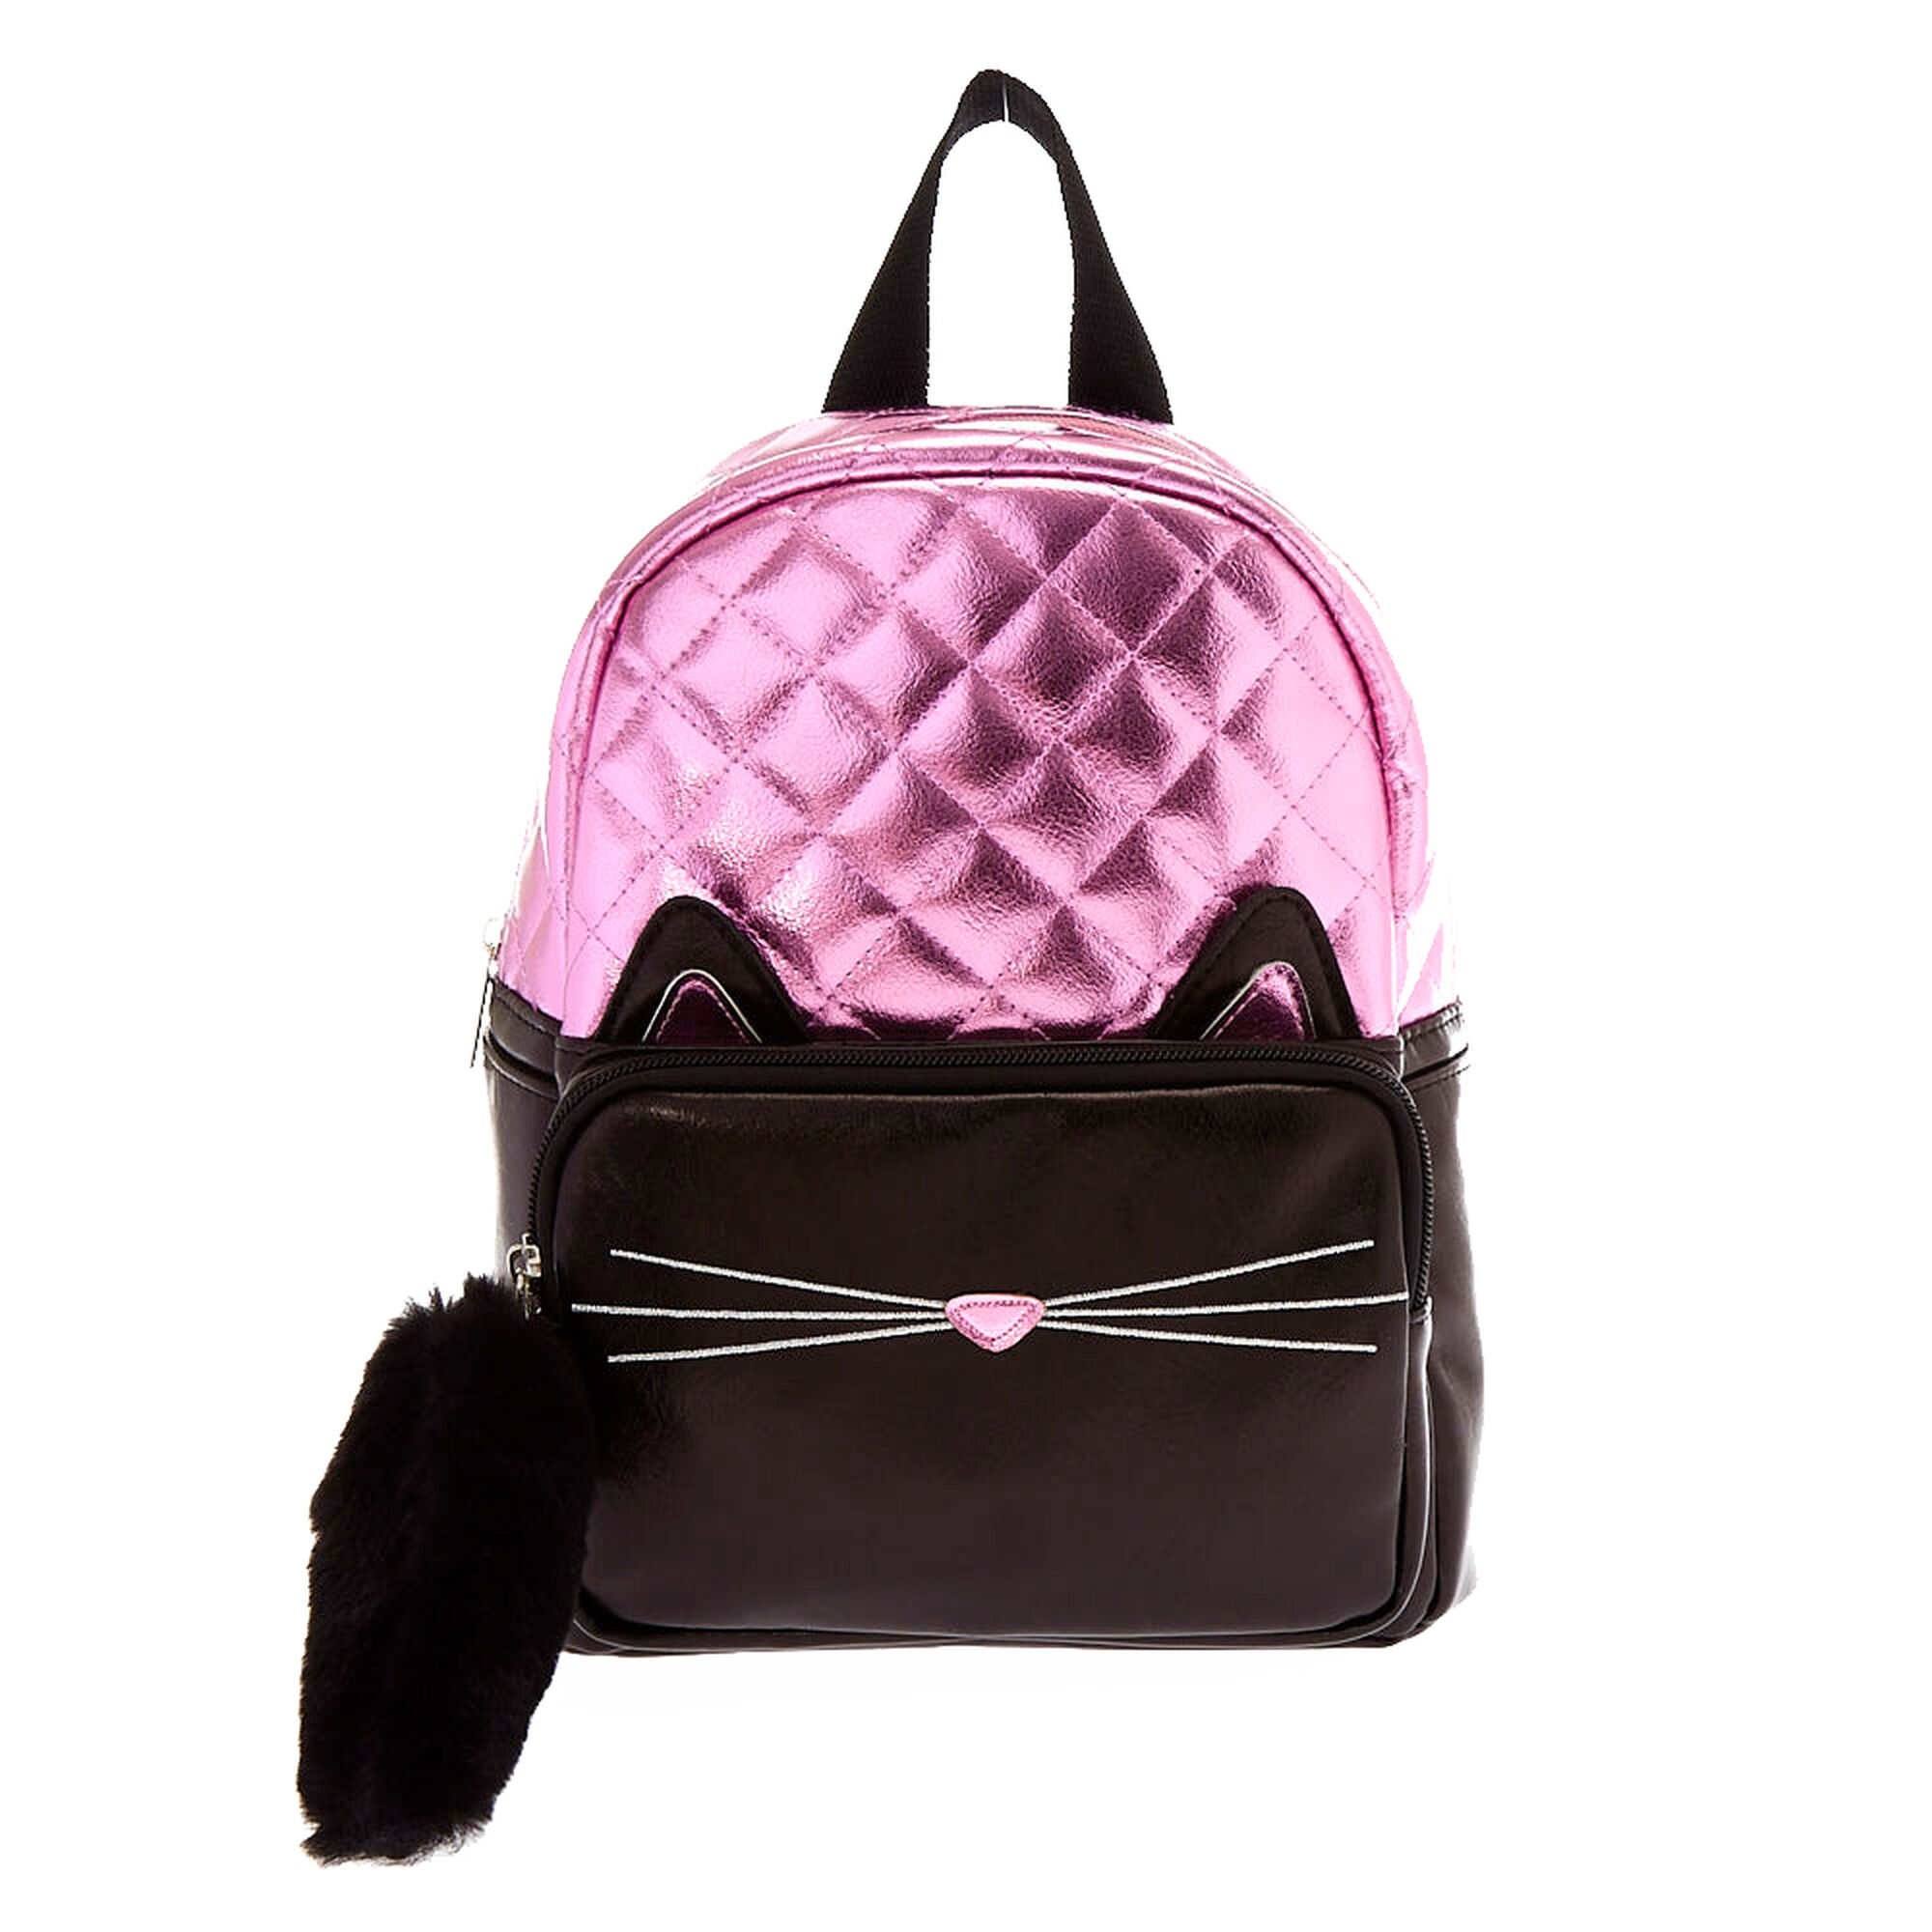 32808900343 likewise 171746127631 in addition Watch further Uchuu Kei By Sora in addition Skip Hop Zoo Backpack Unicorn. on pusheen unicorn backpack